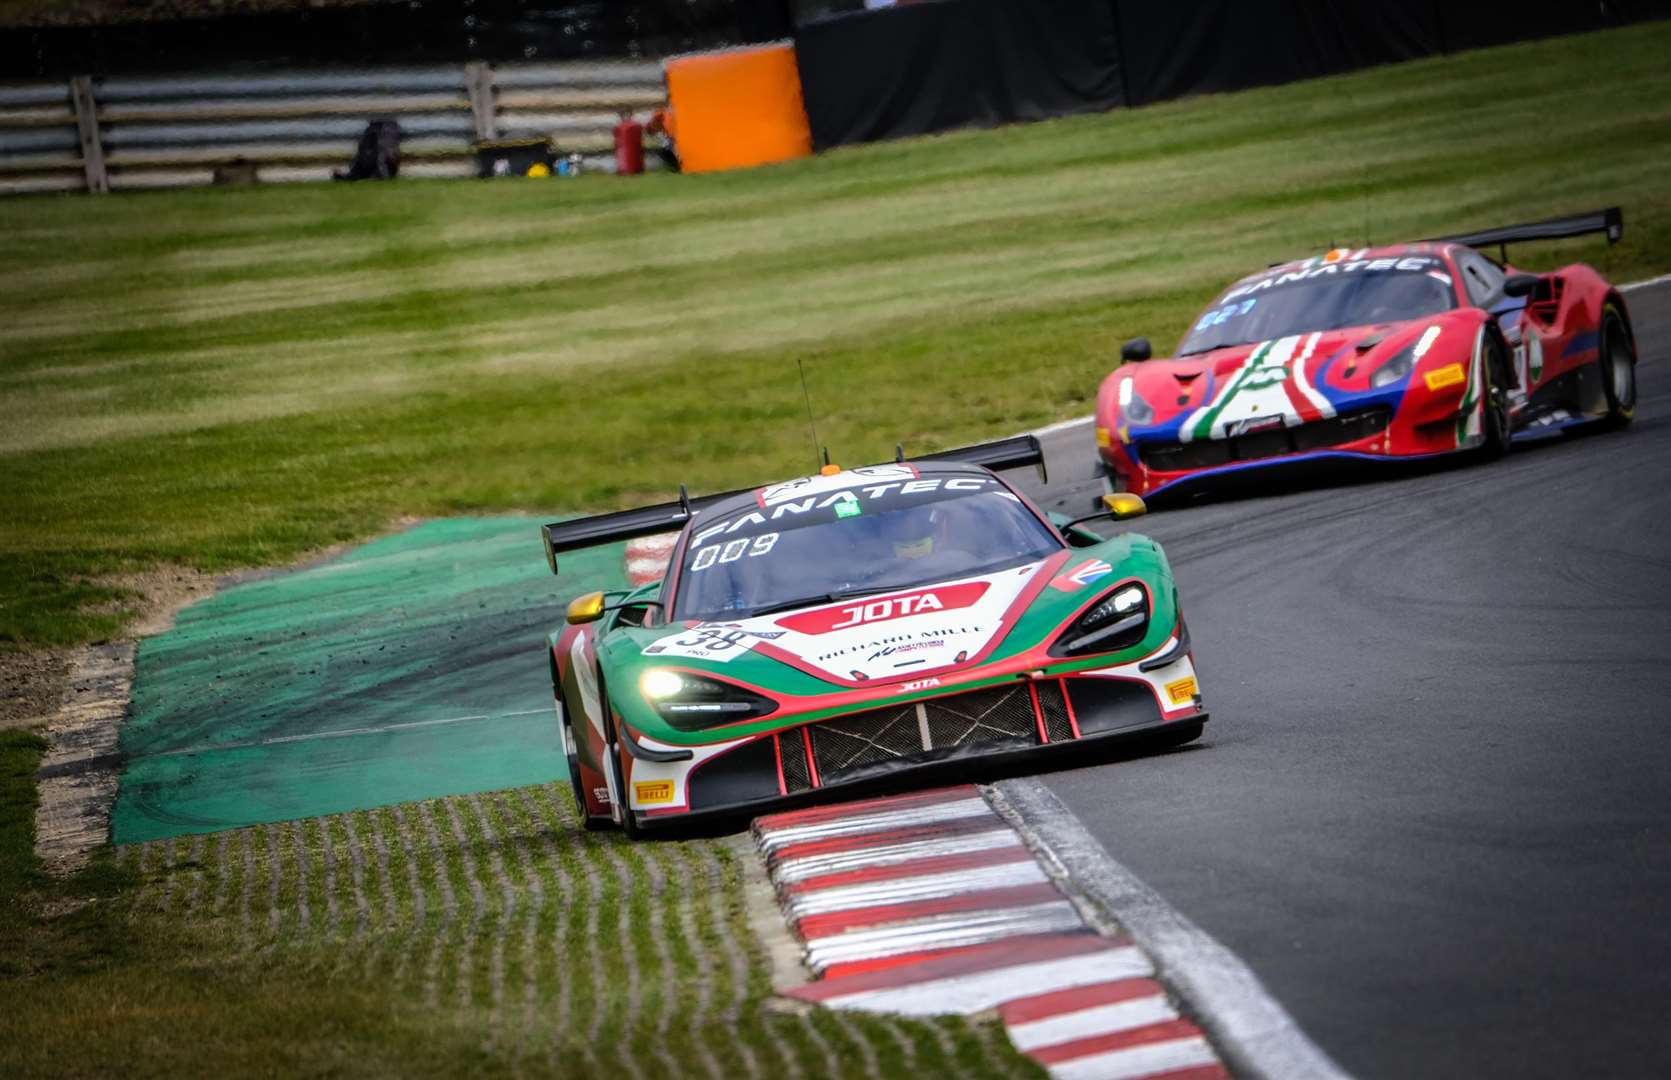 Jota has raced at Le Mans for years but rarely competes at Brands Hatch. Picture: SRO